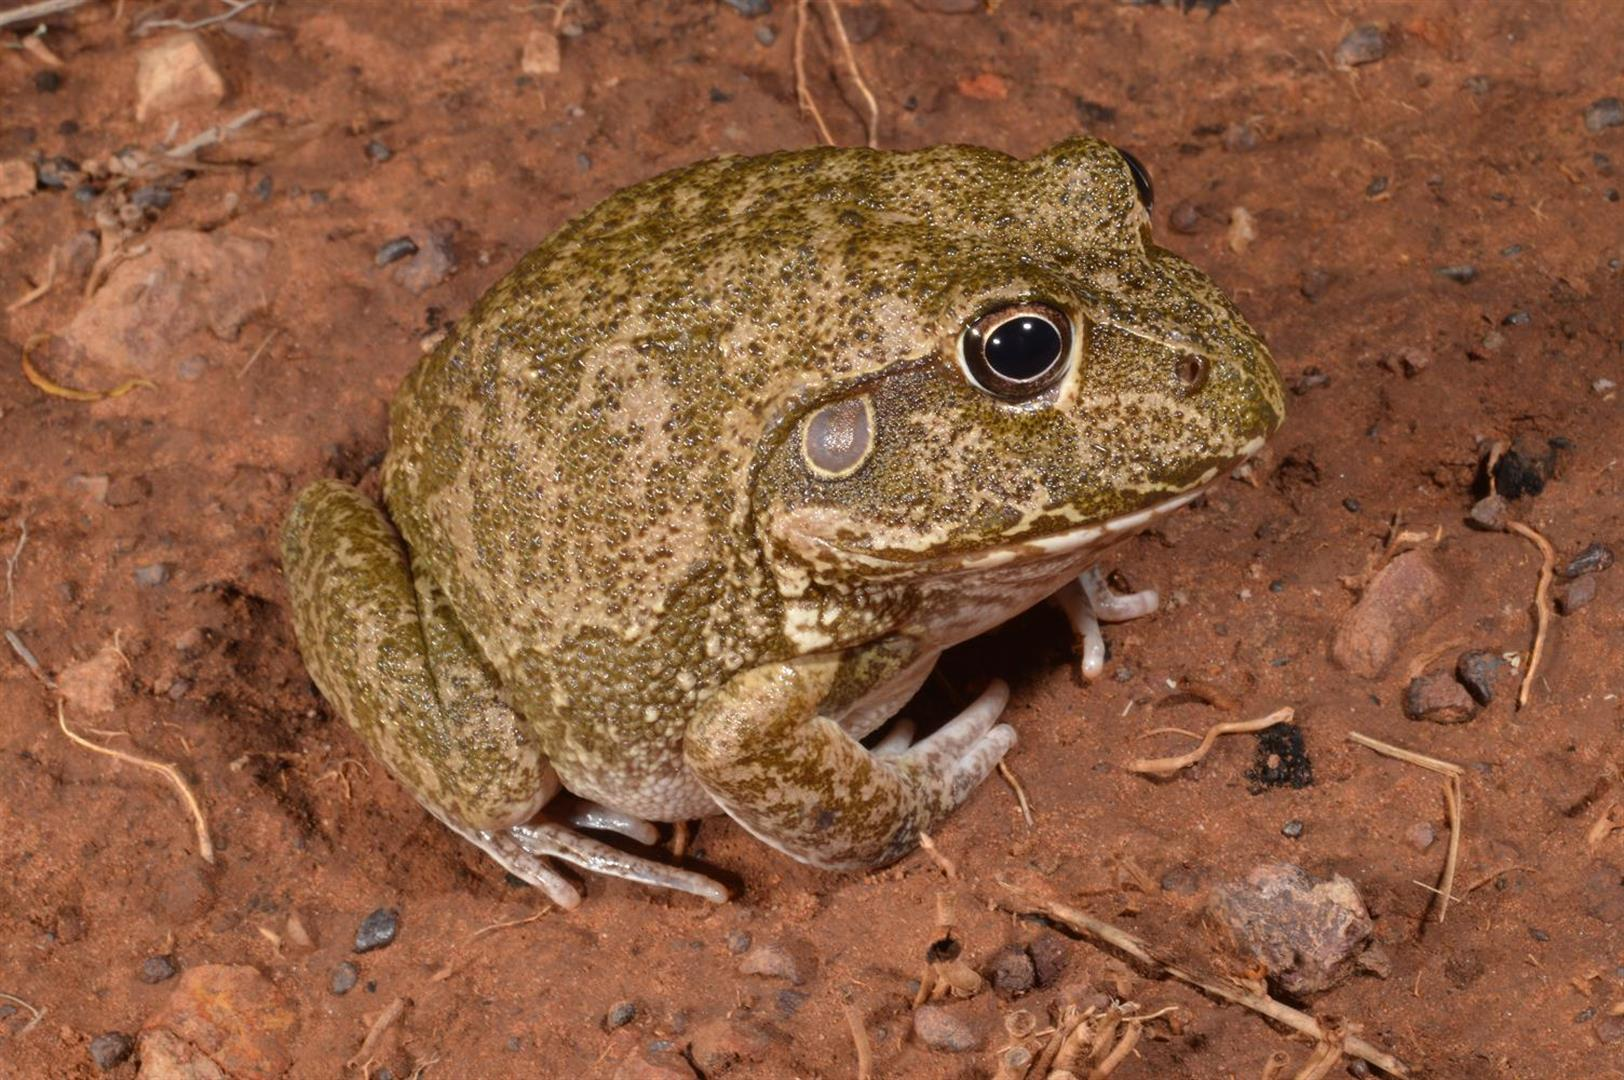 Eastern Snapping Frog (Cyclorana/Litoria novaehollandiae), Glenmorgan, Queensland.  Photograph courtesy and copyright Mike Swan.